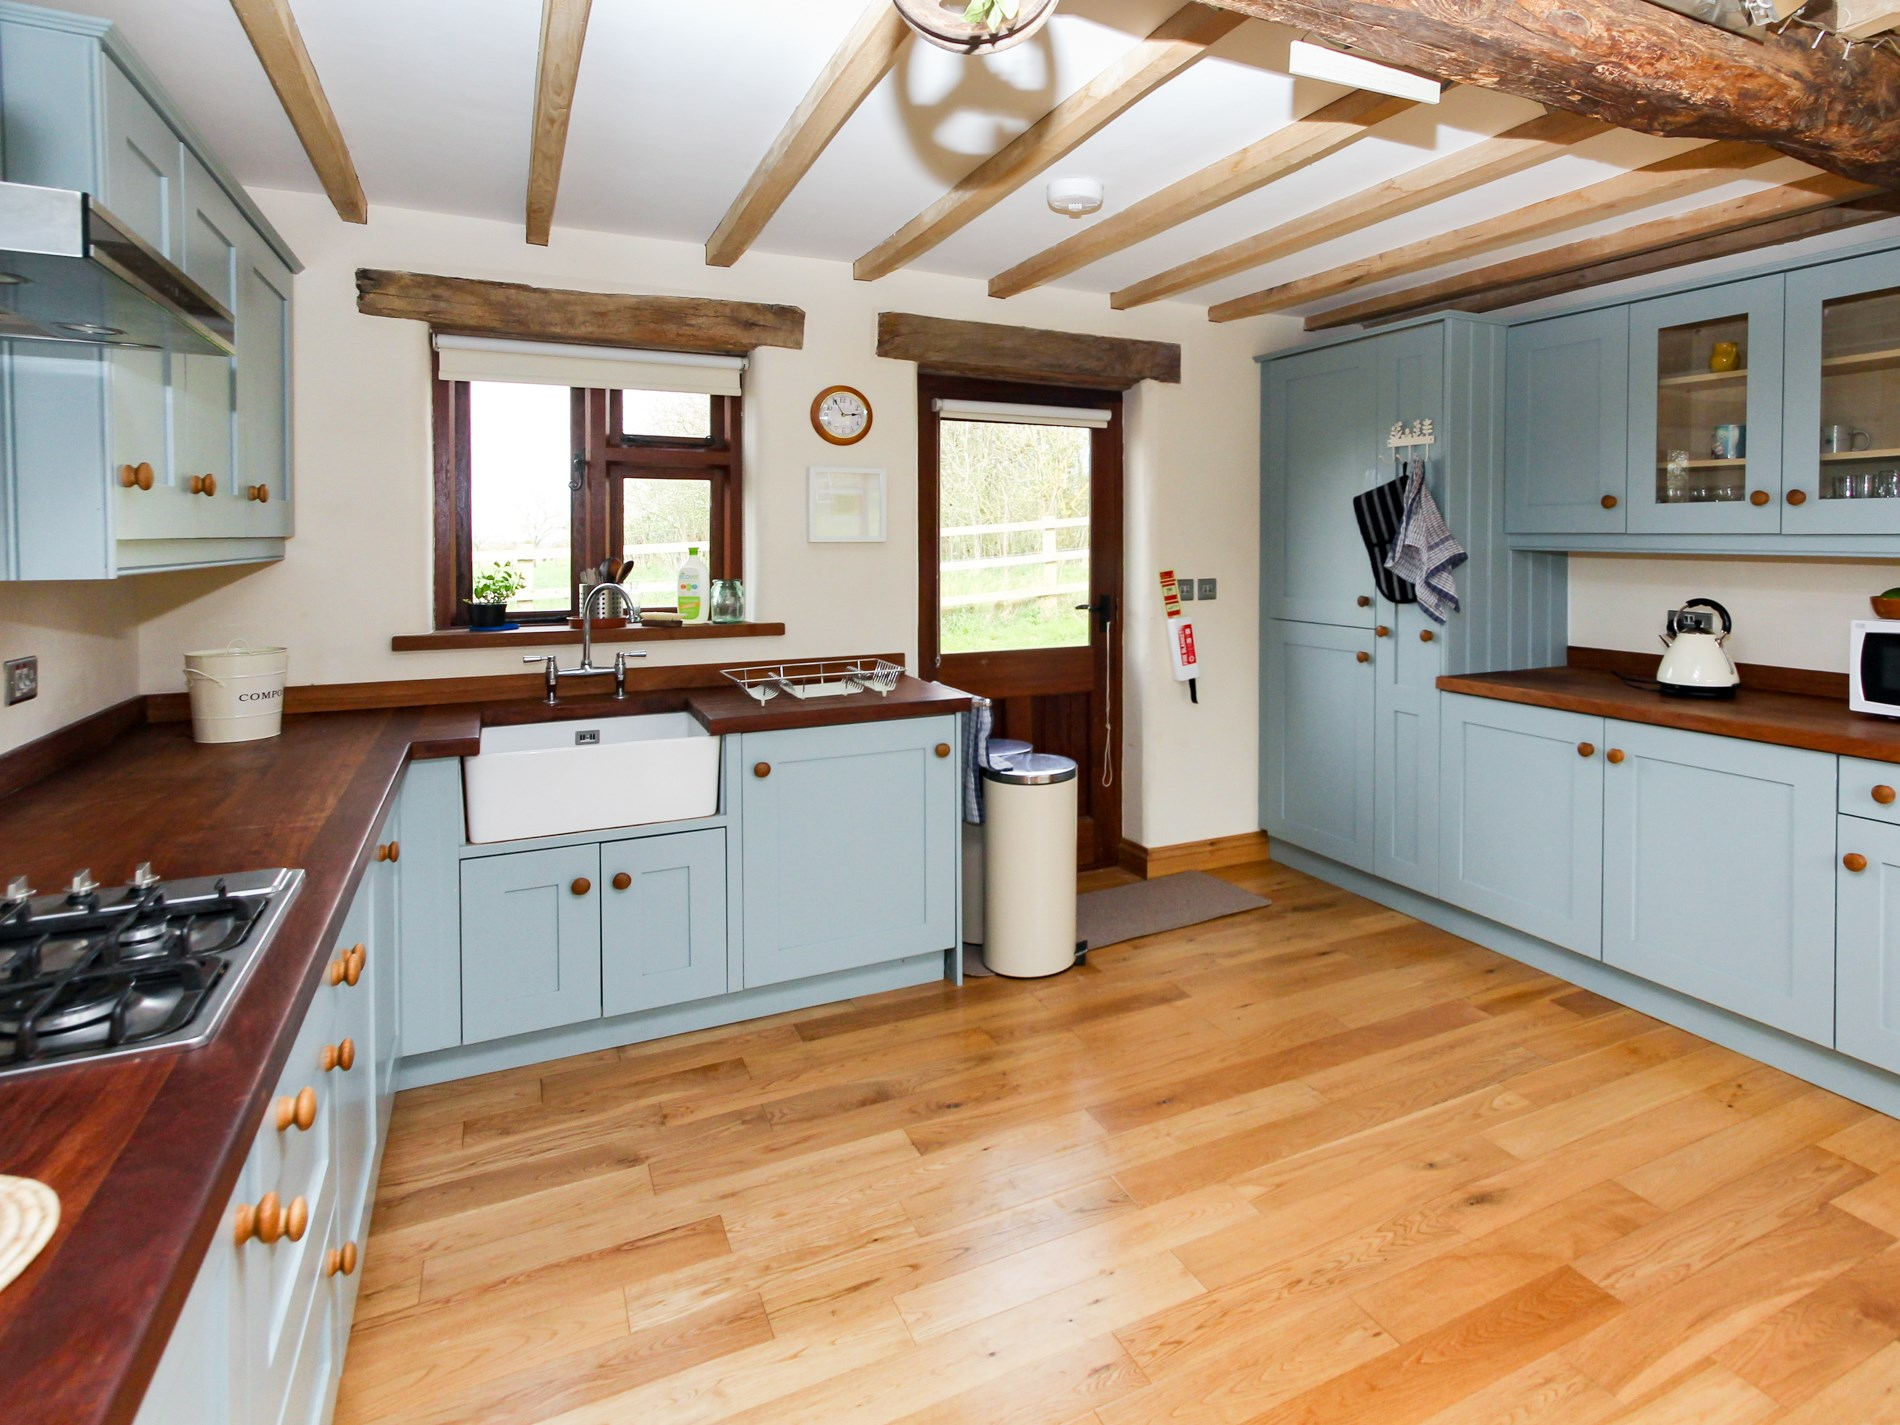 Spacious kitchen for keen cooks